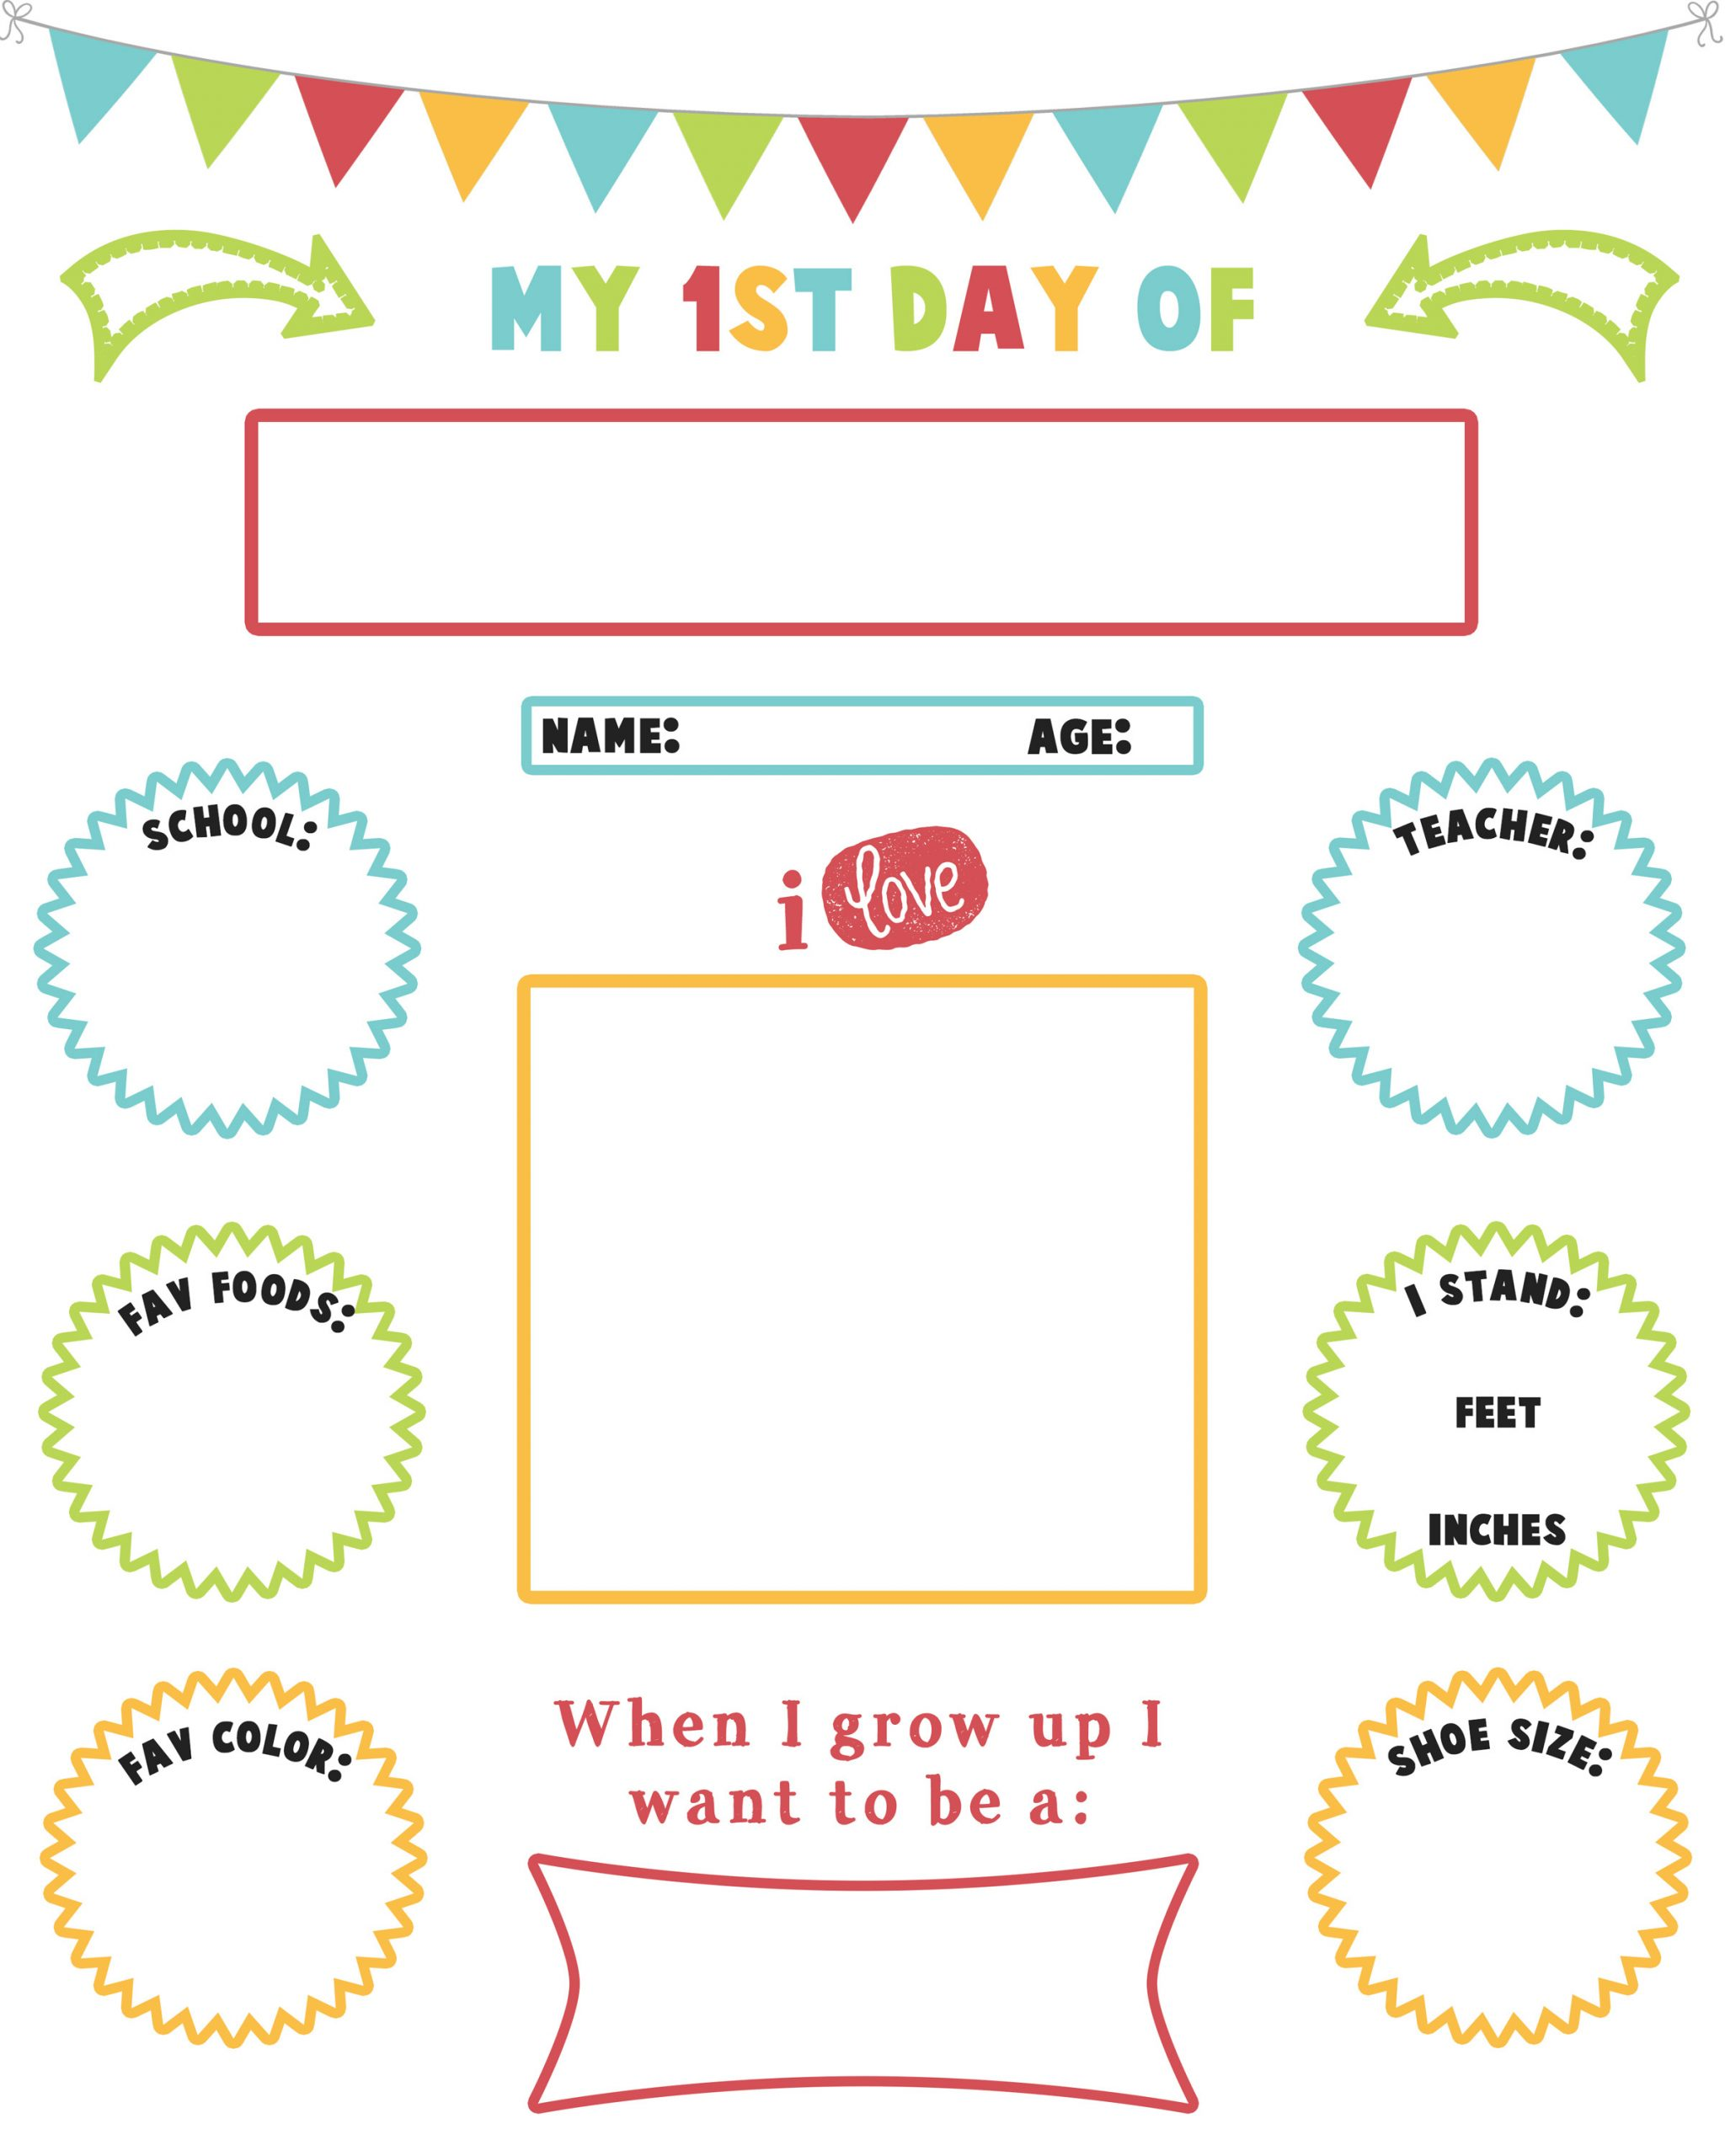 First Day Of School Worksheet Back to School Printable Sign Mishmash by ash Graphic Design